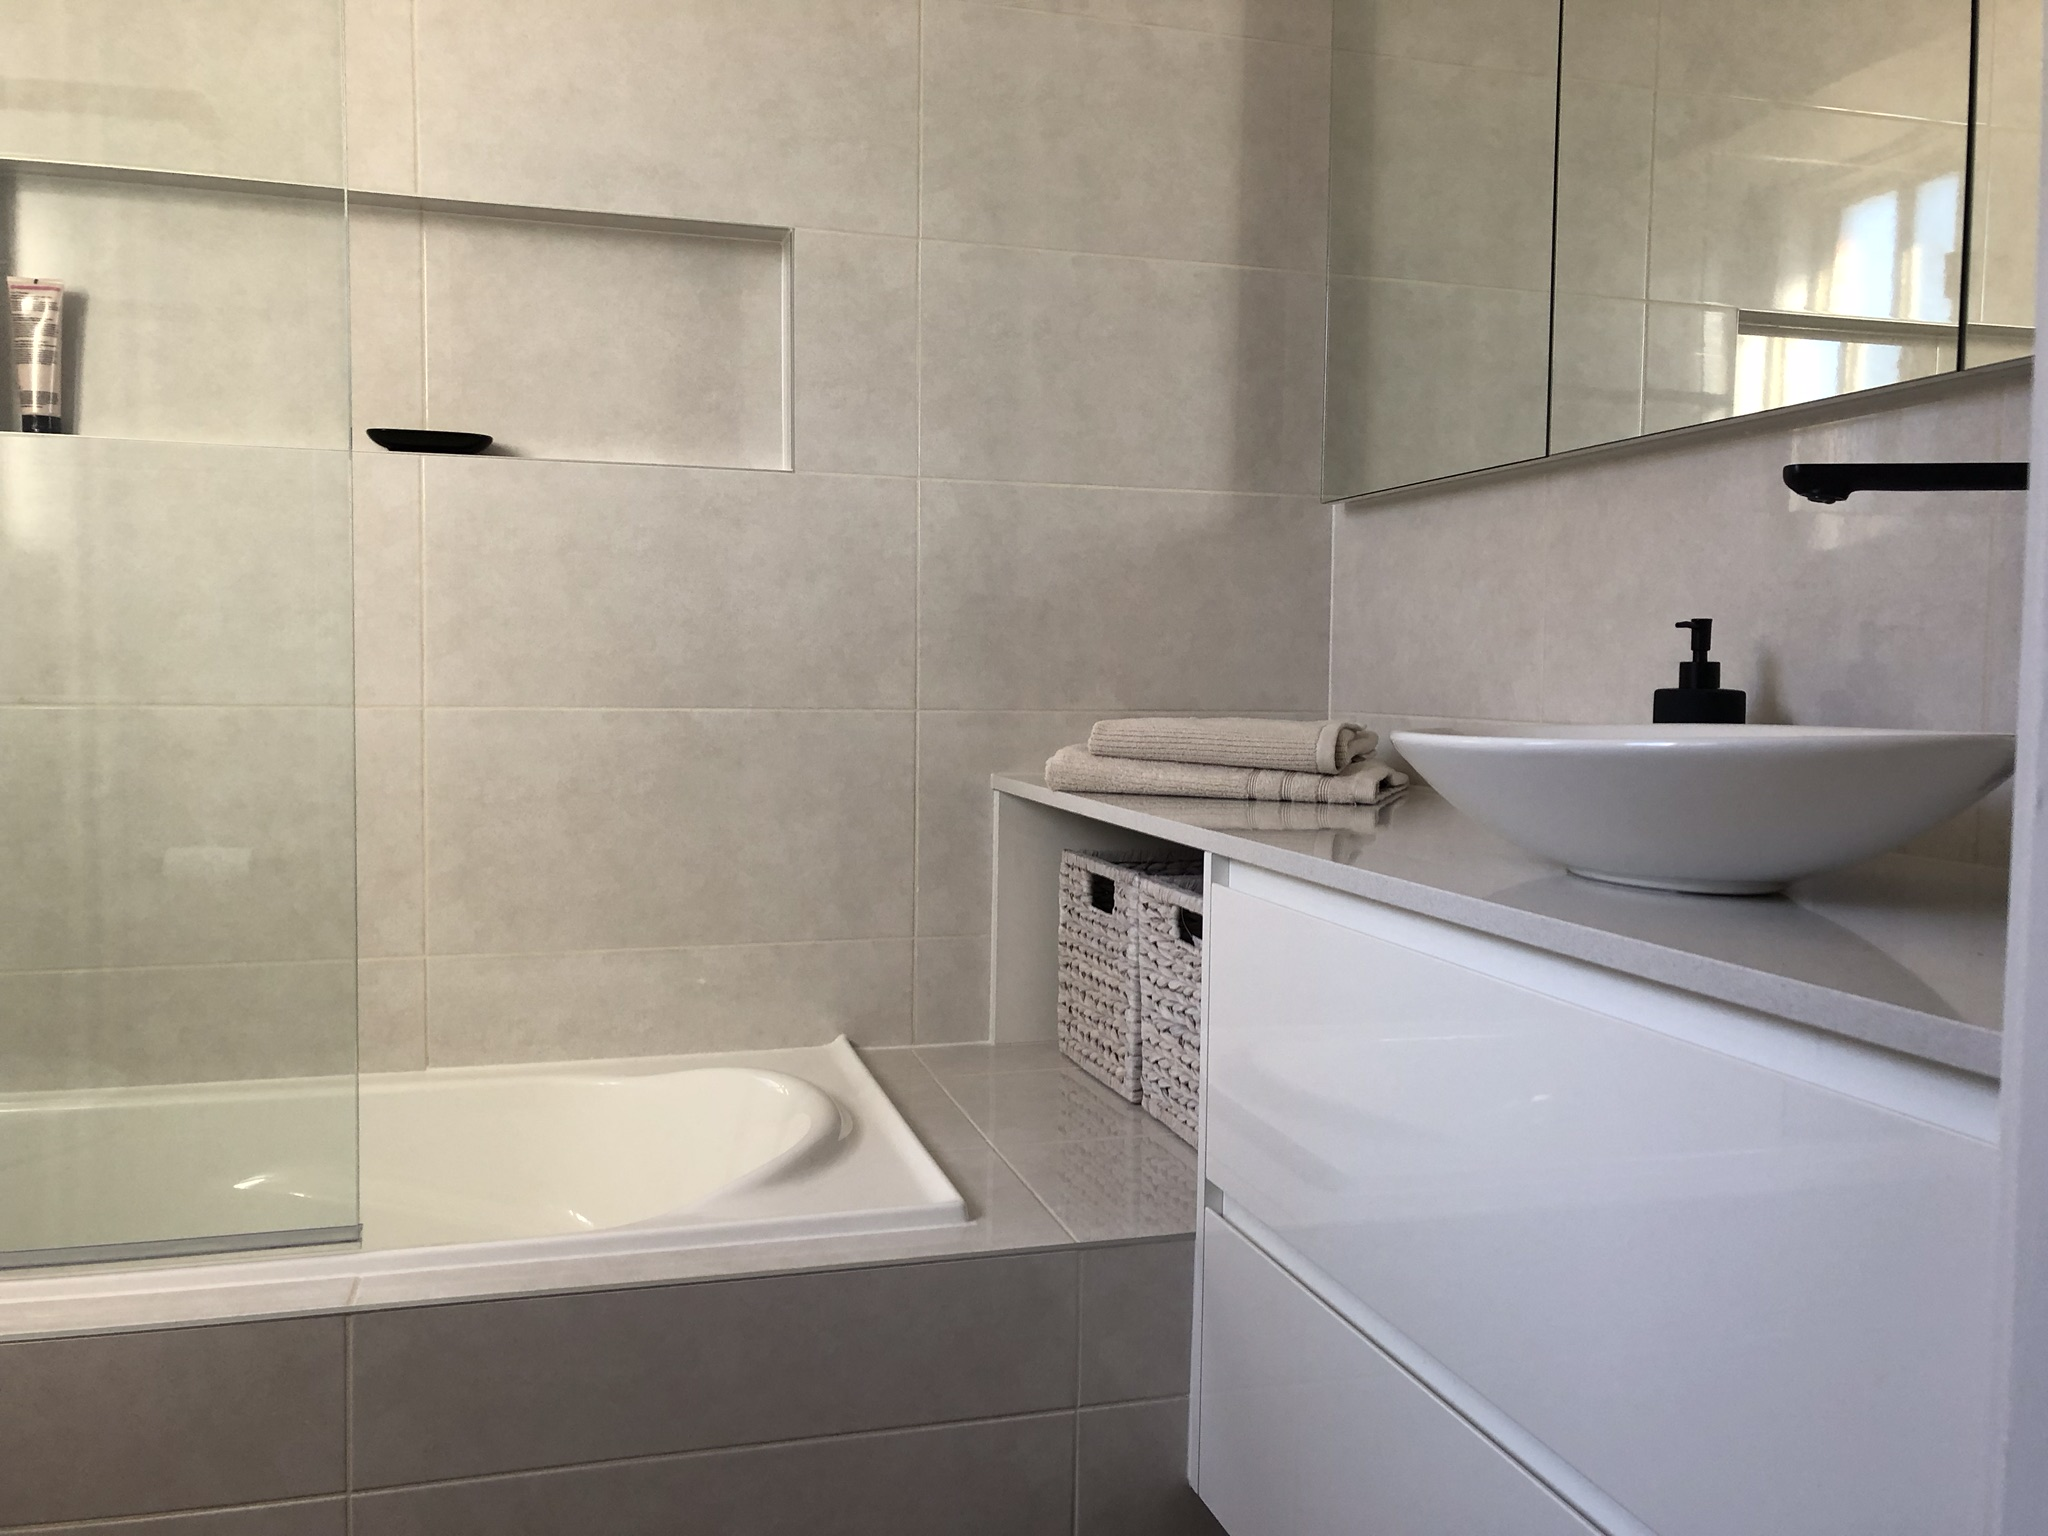 Bathroom Renovation Bella Vista – Stunning Shower Bath